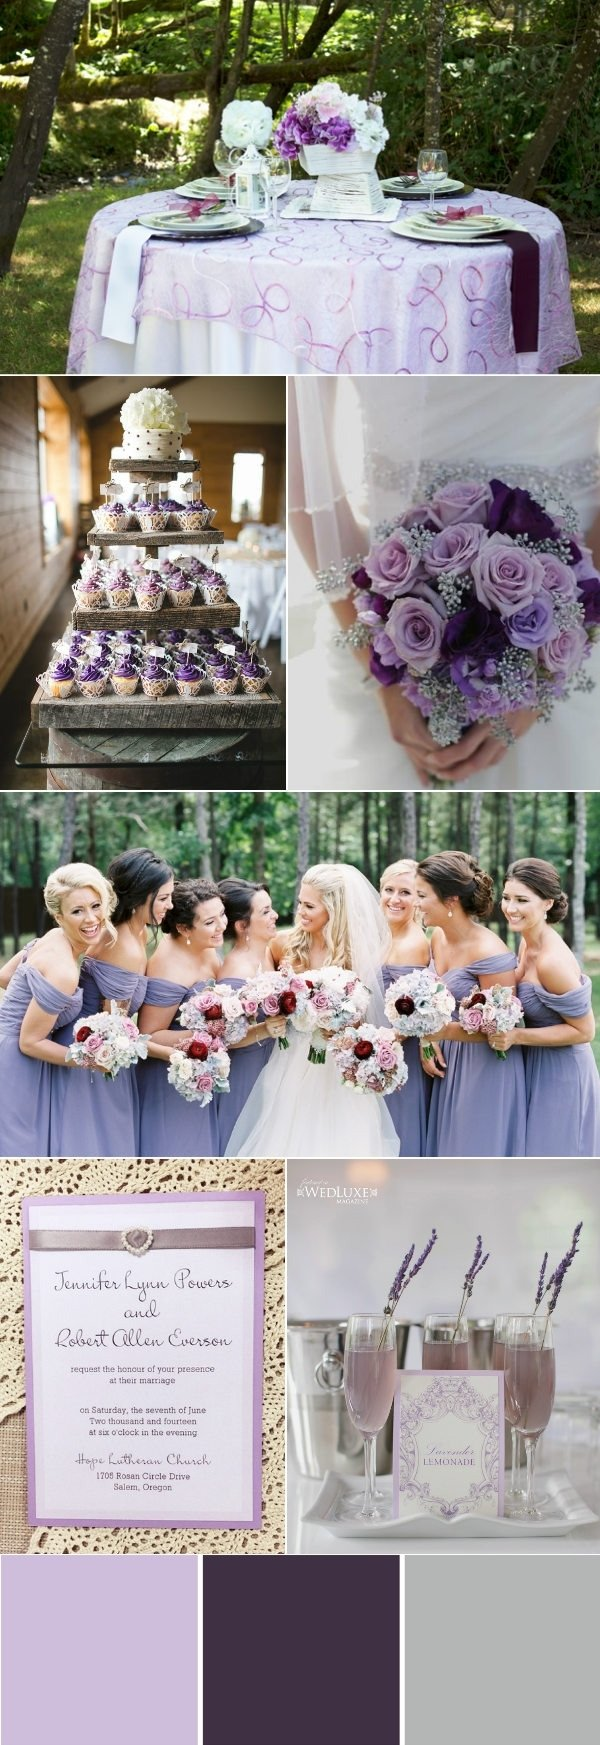 10 Fabulous Purple And Silver Wedding Ideas stunning wedding color ideas in shades of purple and silver